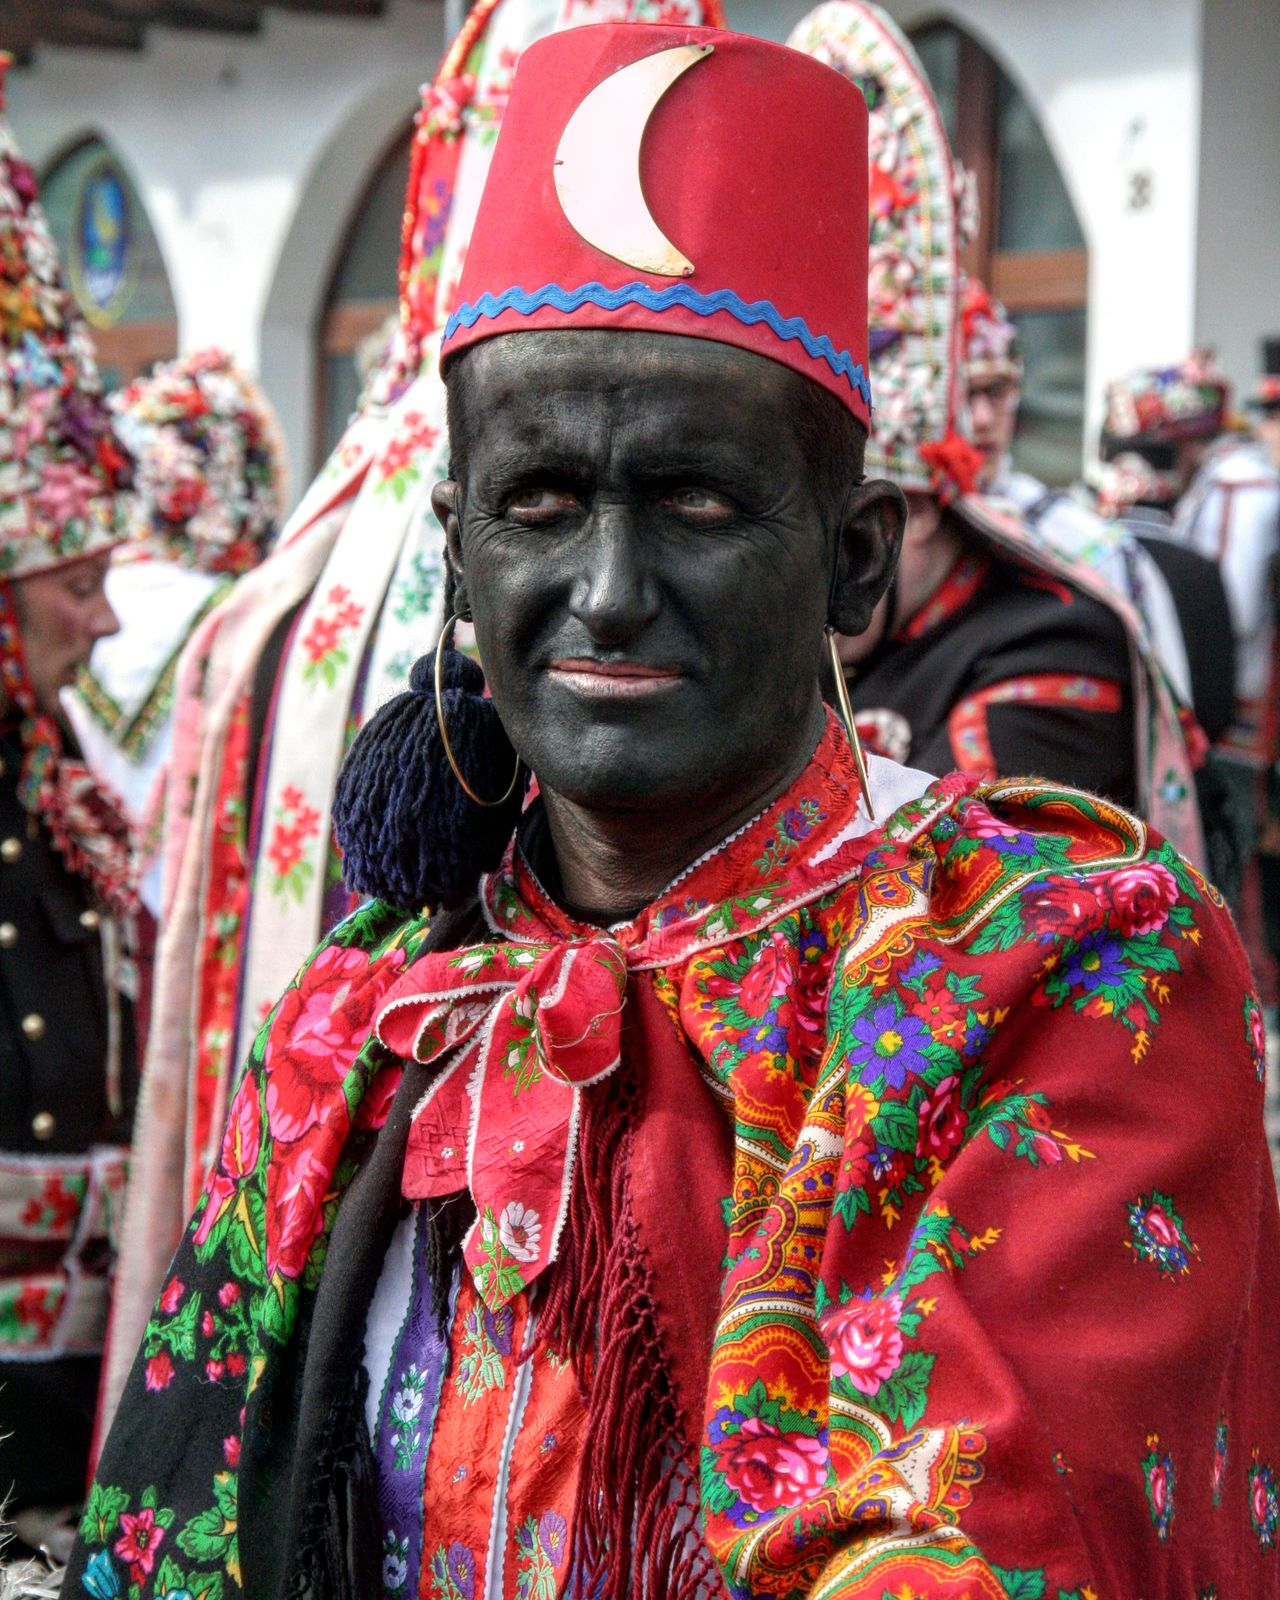 Baio 2017 Italy Baio 2017 Baio Italy EyeEm Gallery Popular EyeEmBestPics EyeEm Team Popular Photos Trending Photos Costume Traditional Culture One Person Close-up Traditional Clothing Cultures Parade Carnival Eyeem Market Uniqueness Colour Of Life Fashion Carnival Crowds And Details EyeEm Diversity Resist Art Is Everywhere Break The Mold The Portraitist - 2017 EyeEm Awards The Photojournalist - 2017 EyeEm Awards BYOPaper! Live For The Story